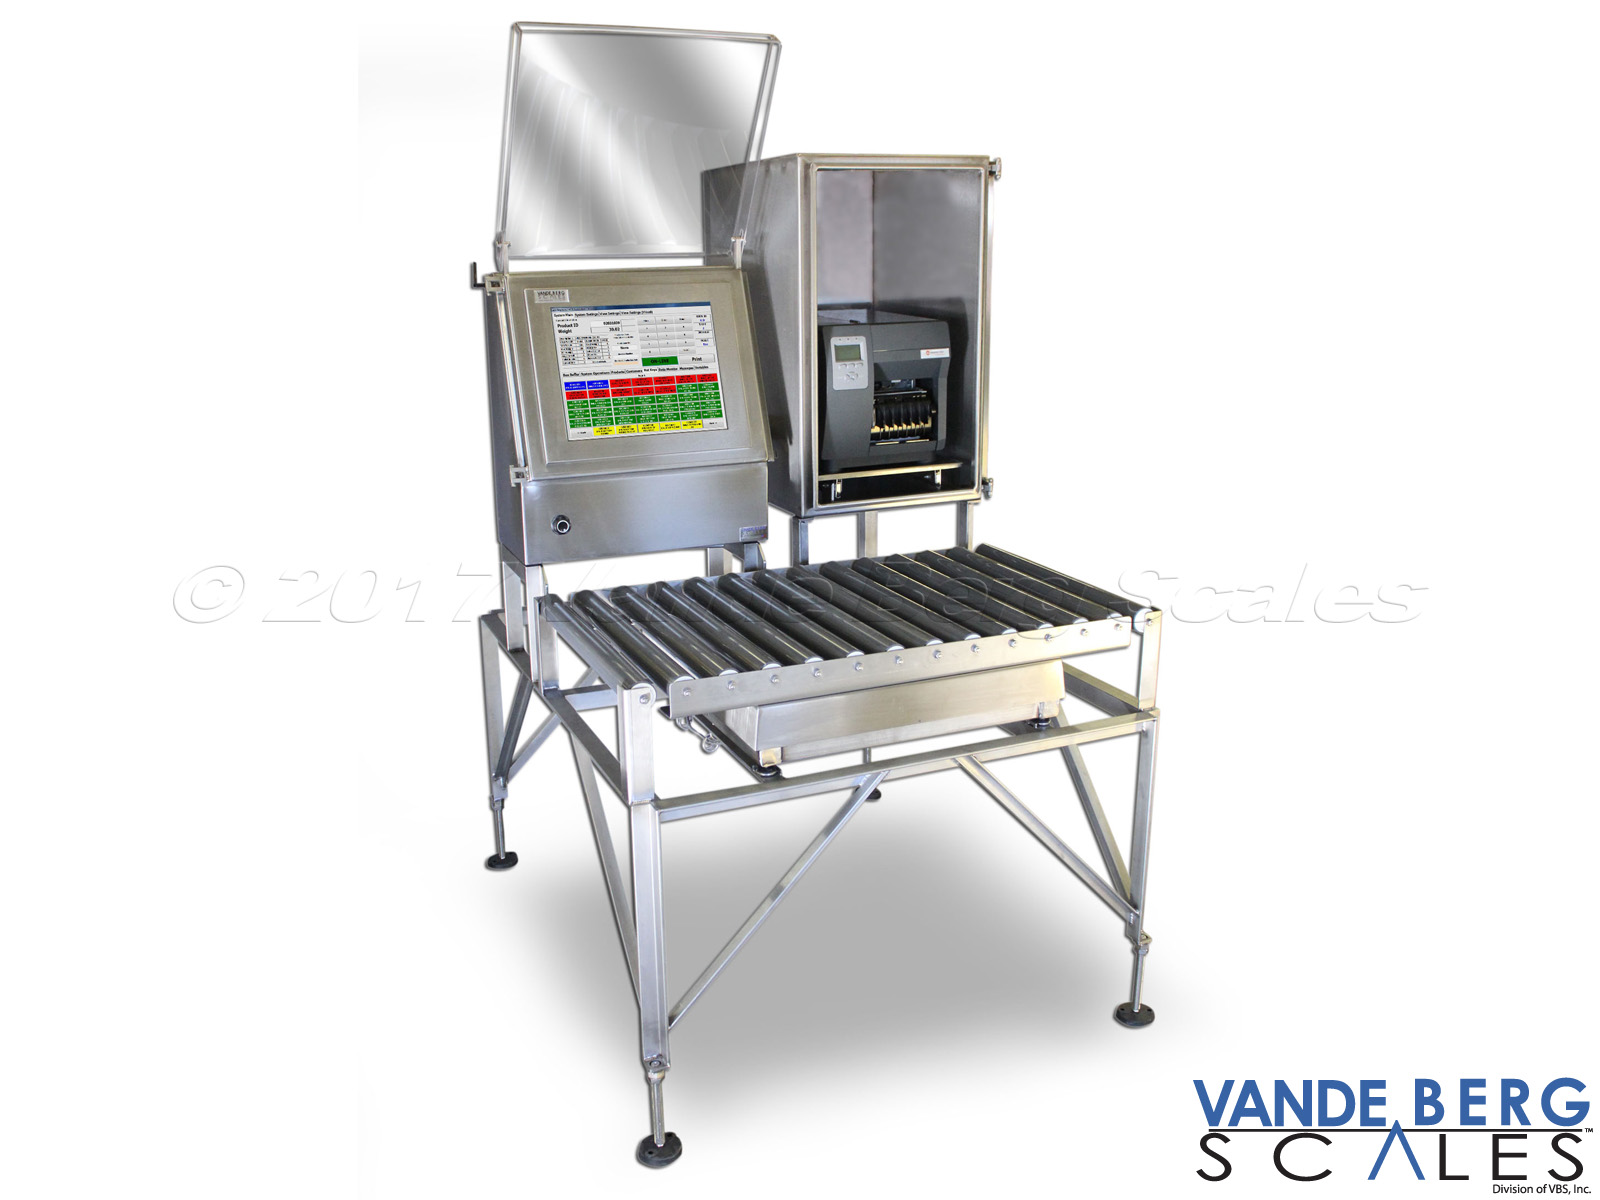 Manual weigh price labeler with slide-out printer, indicator, 17-in touchscreen HMI and roller-top scale